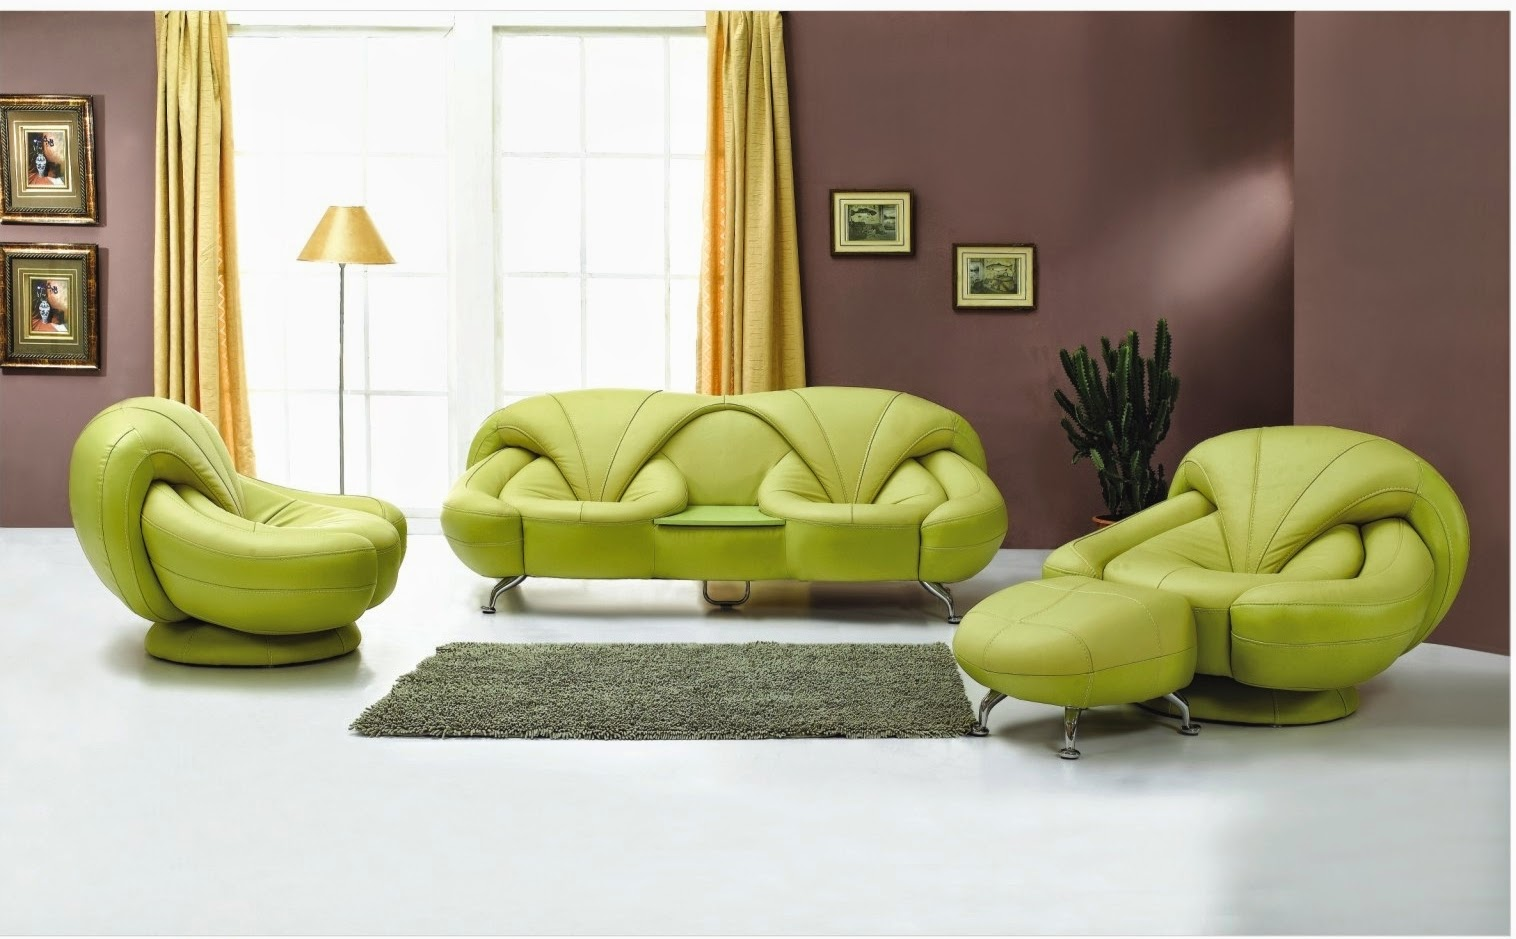 Furniture shops in kirti nagar sofa maker